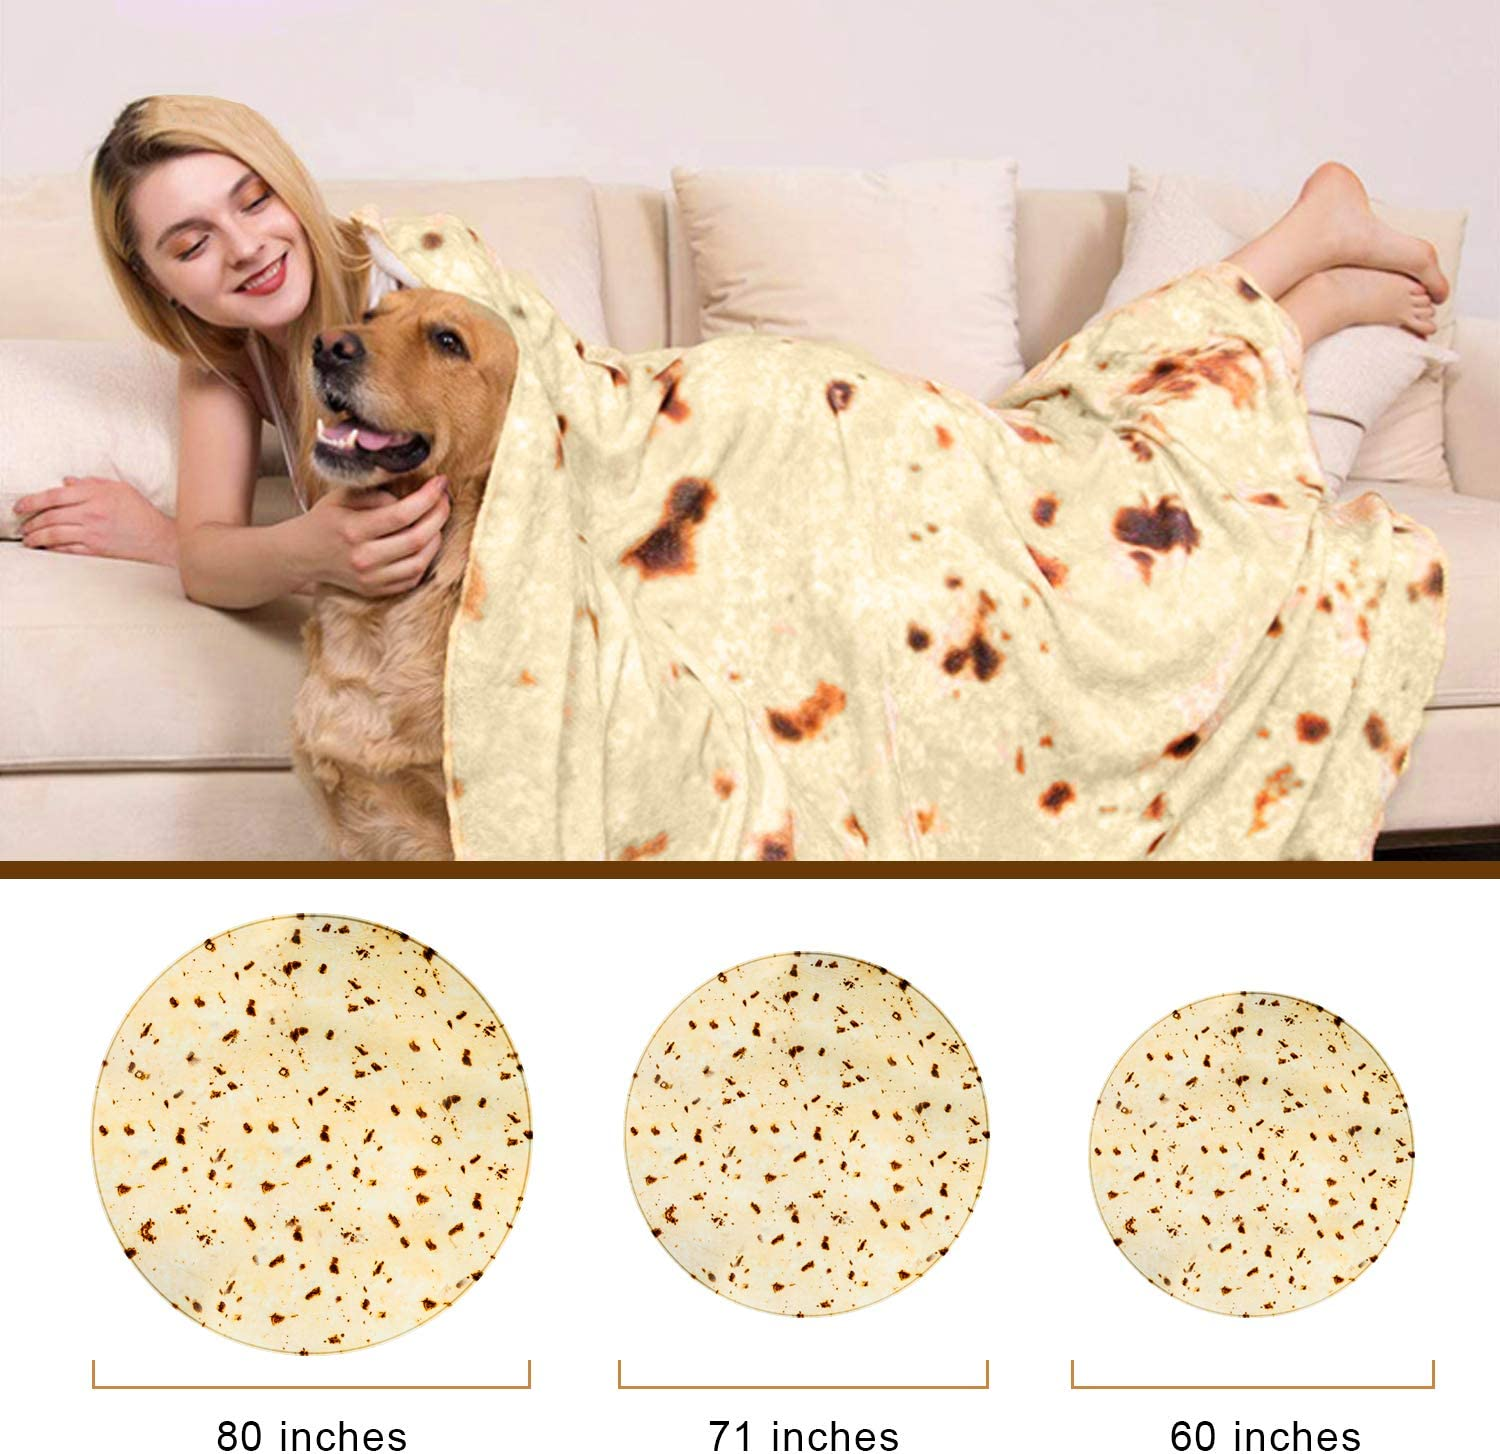 Burritos Wrap Throw Blanket Soft and Plush Novelty Fuzzy Blanket Comfort Wearable Flannel Blanket for Kids and Adults Diameter 60 inches Sivio Burritos Tortilla Blanket with Dual Sided Pattern